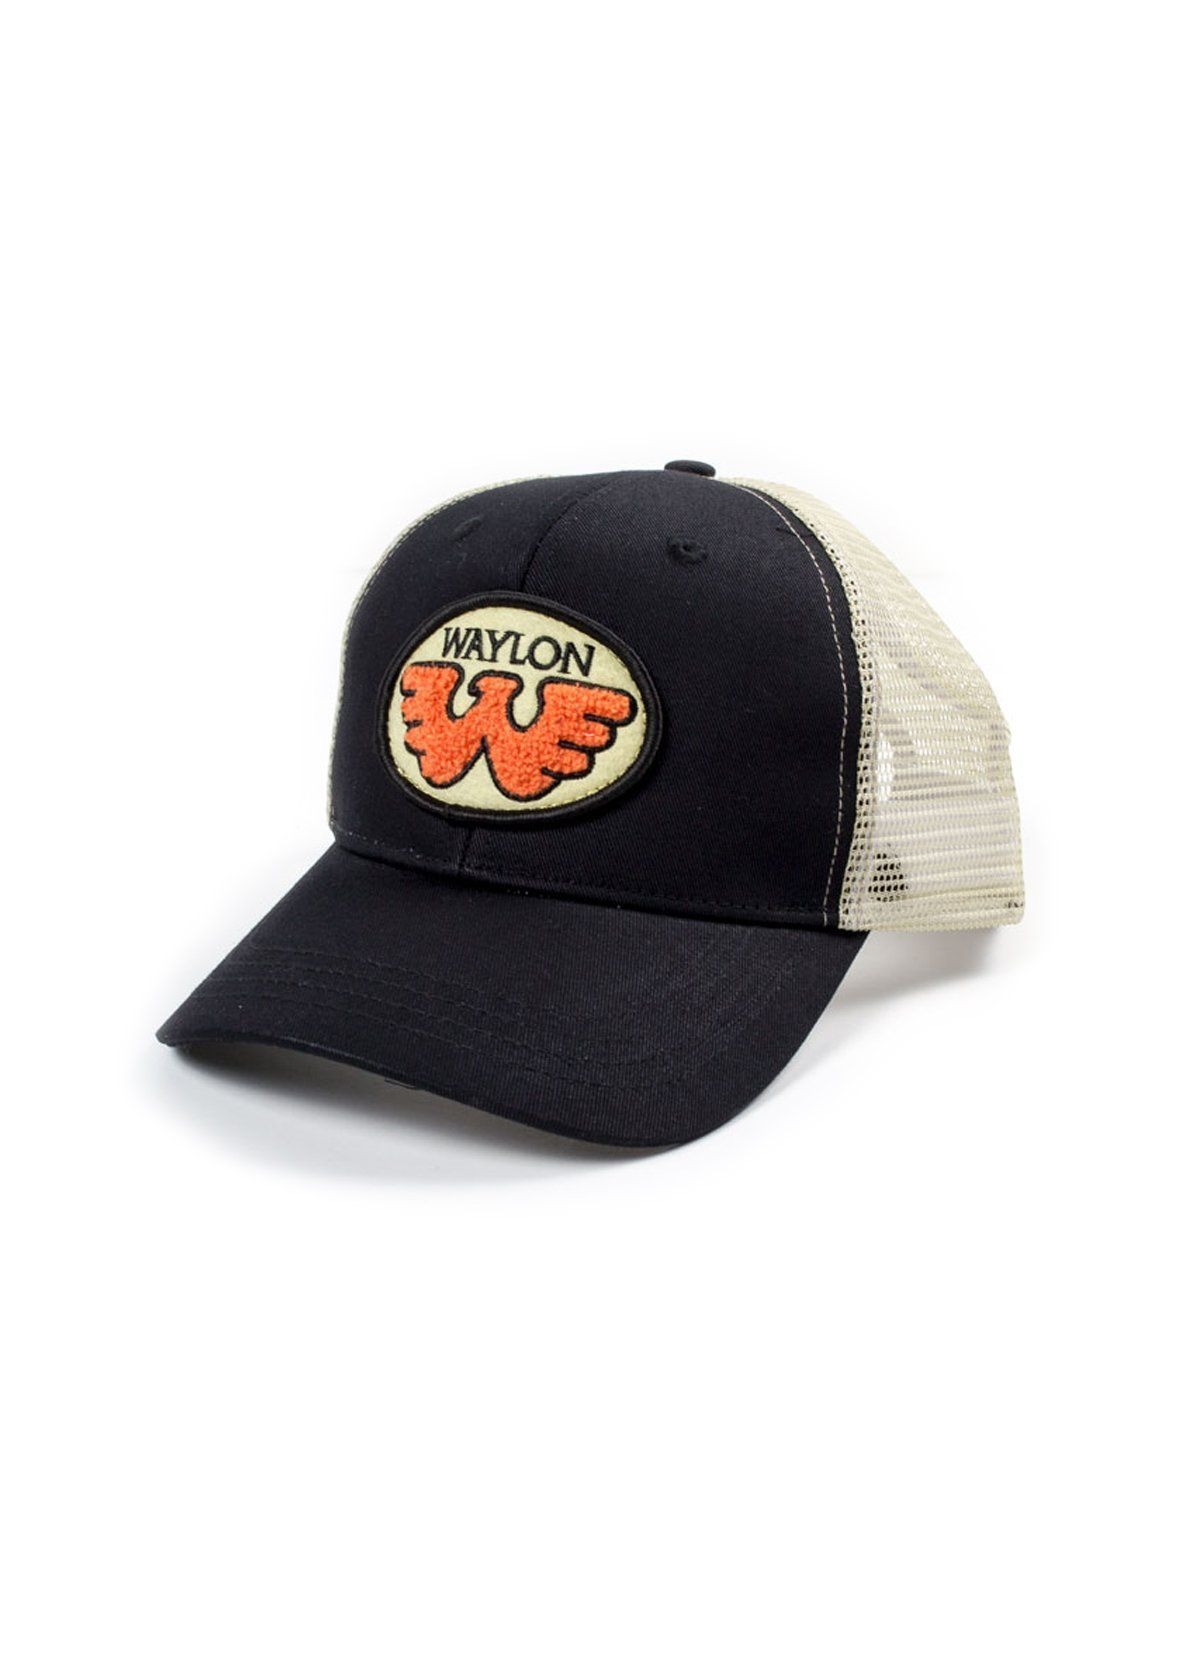 8a2e7238775 Flying W Patched Waylon Jennings Trucker Hat